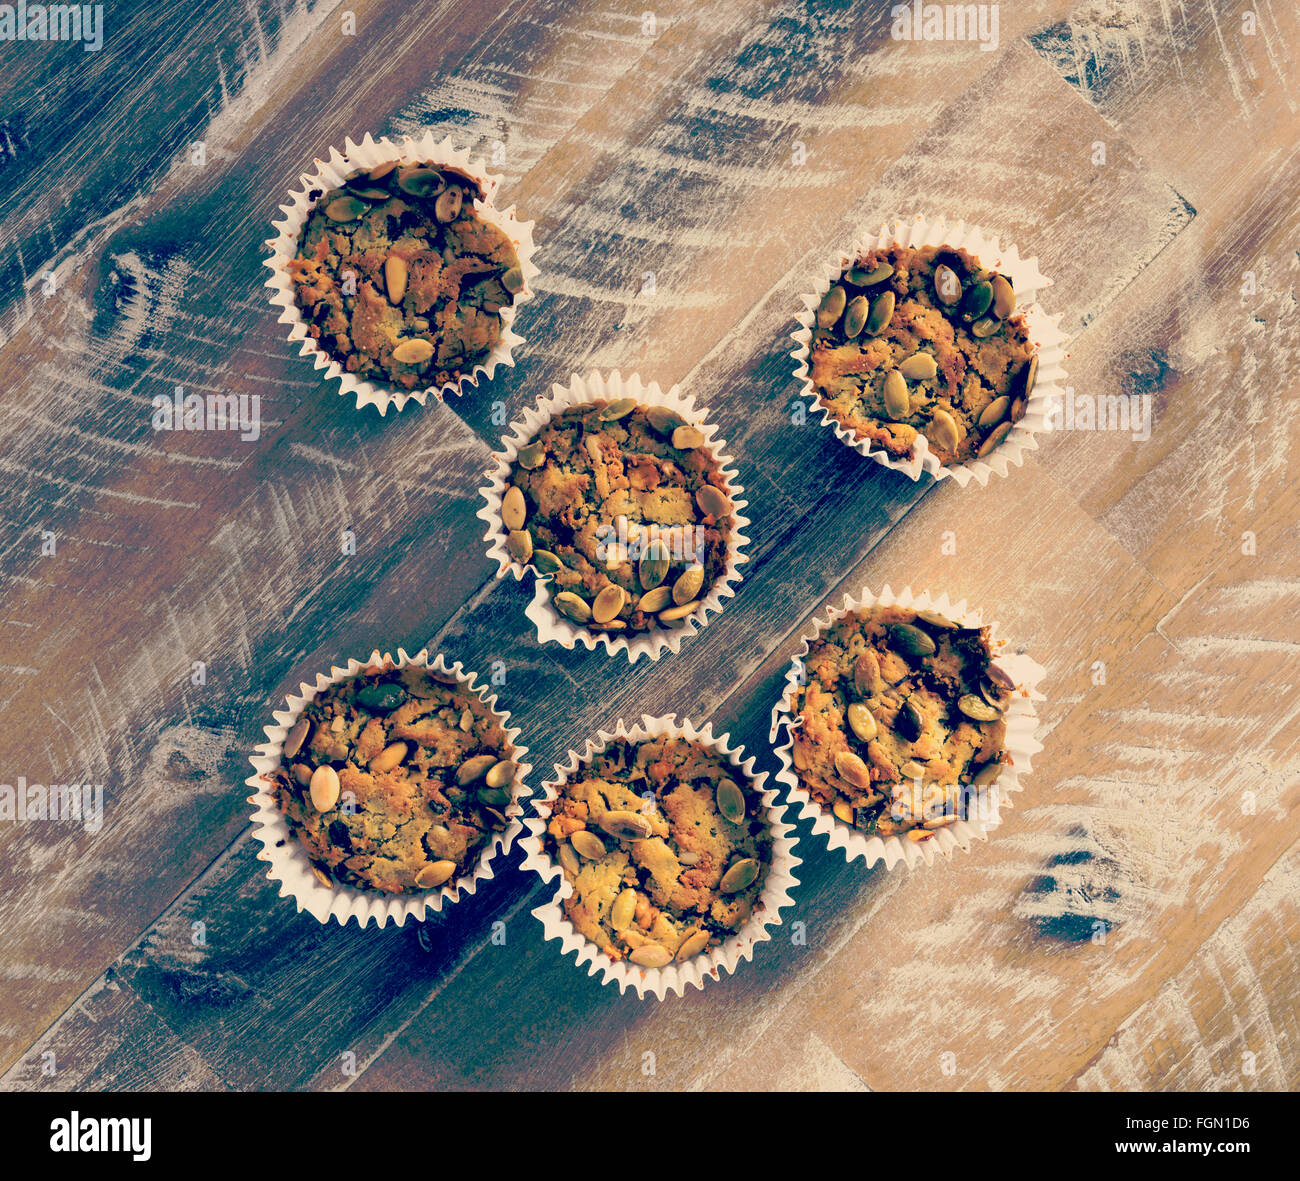 Handmade Savoury Blue Cheese Cupcakes on vintage wooden background, aerial top view, toned filter applied - Stock Image